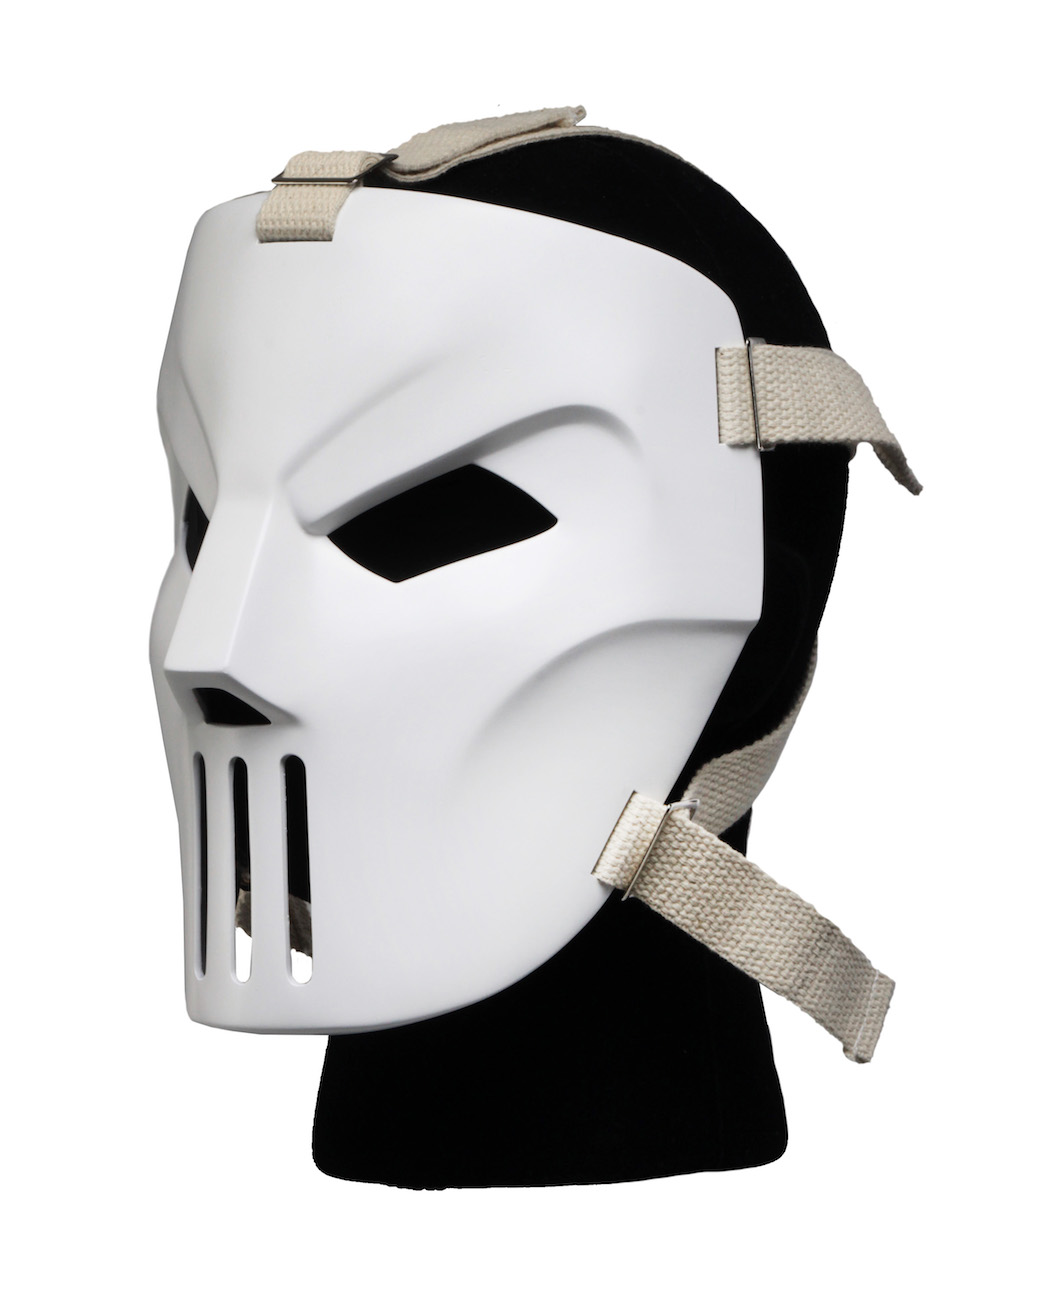 Shipping This Week – TMNT Casey Jones Mask, Quarter Scale